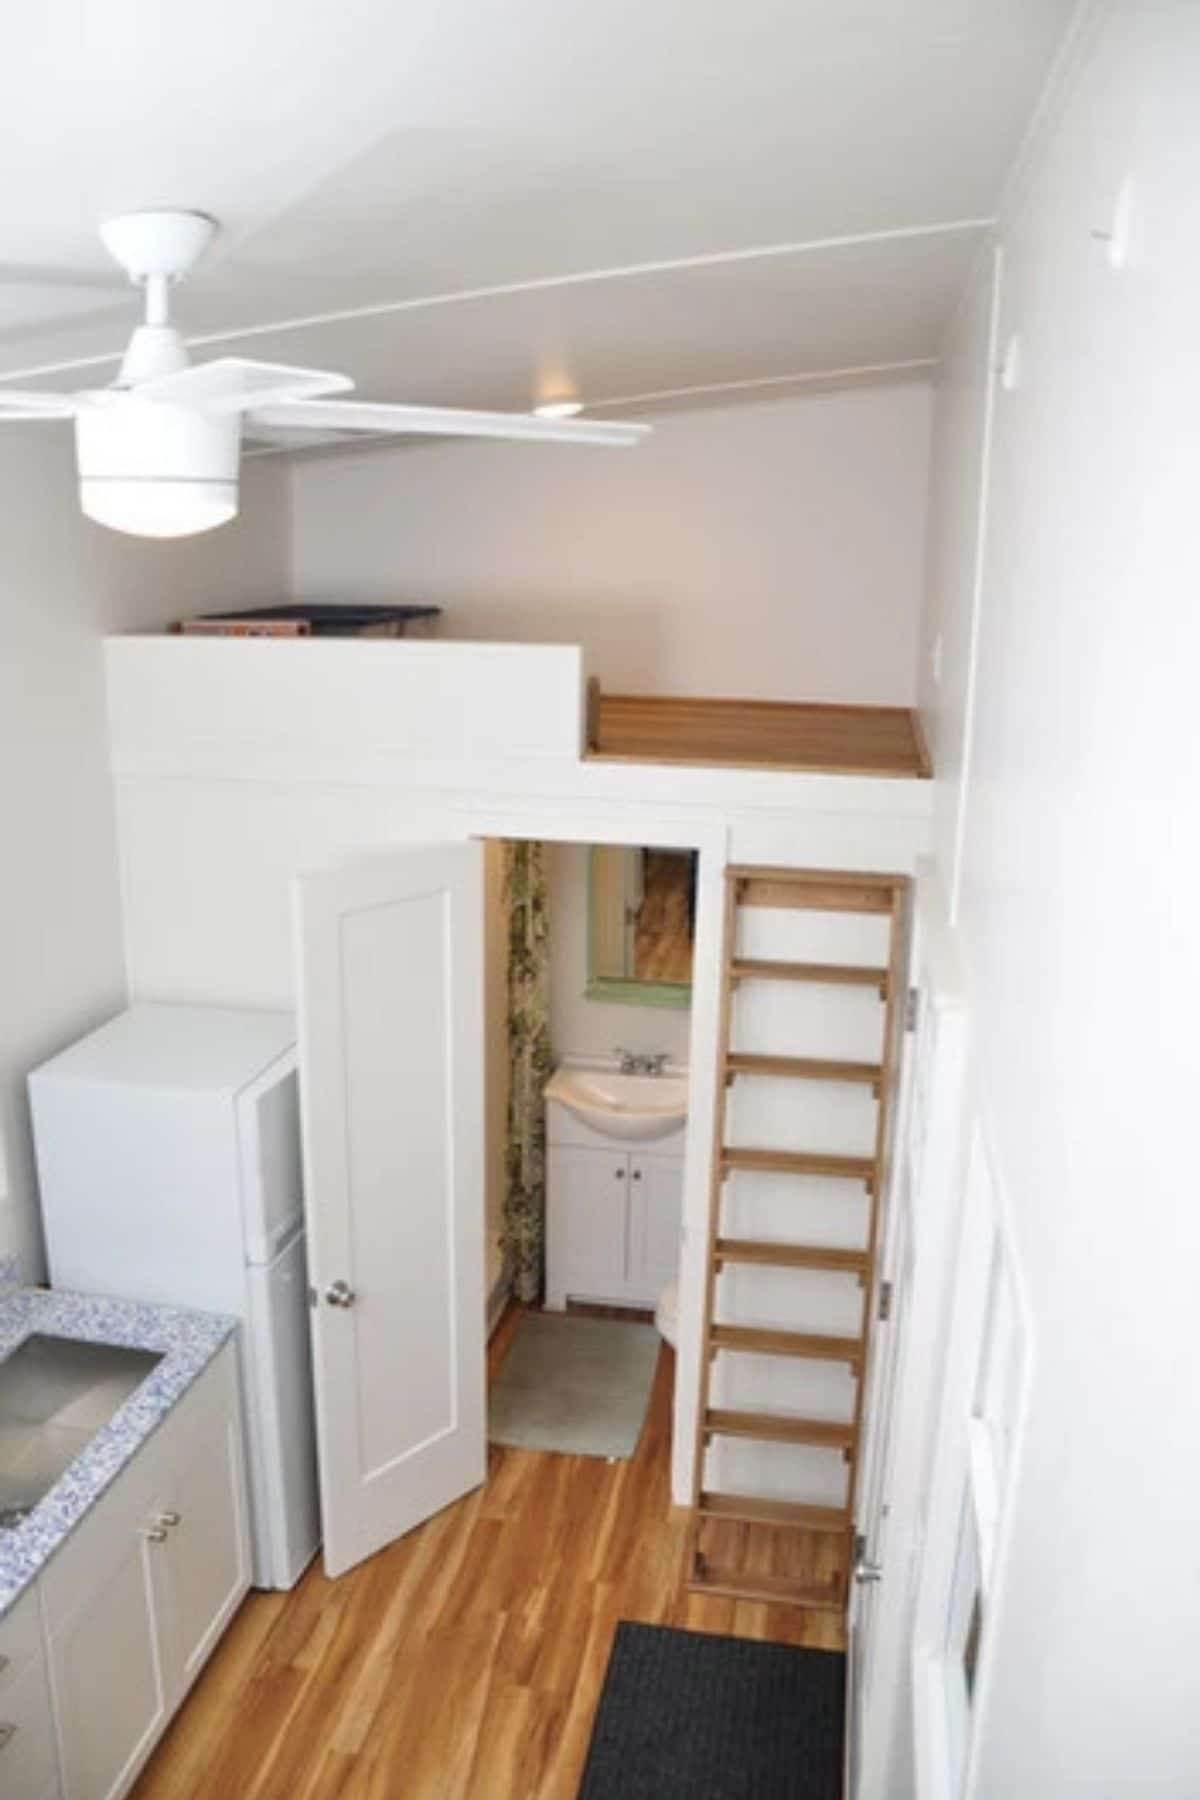 Small loft above bathroom with wood ladder